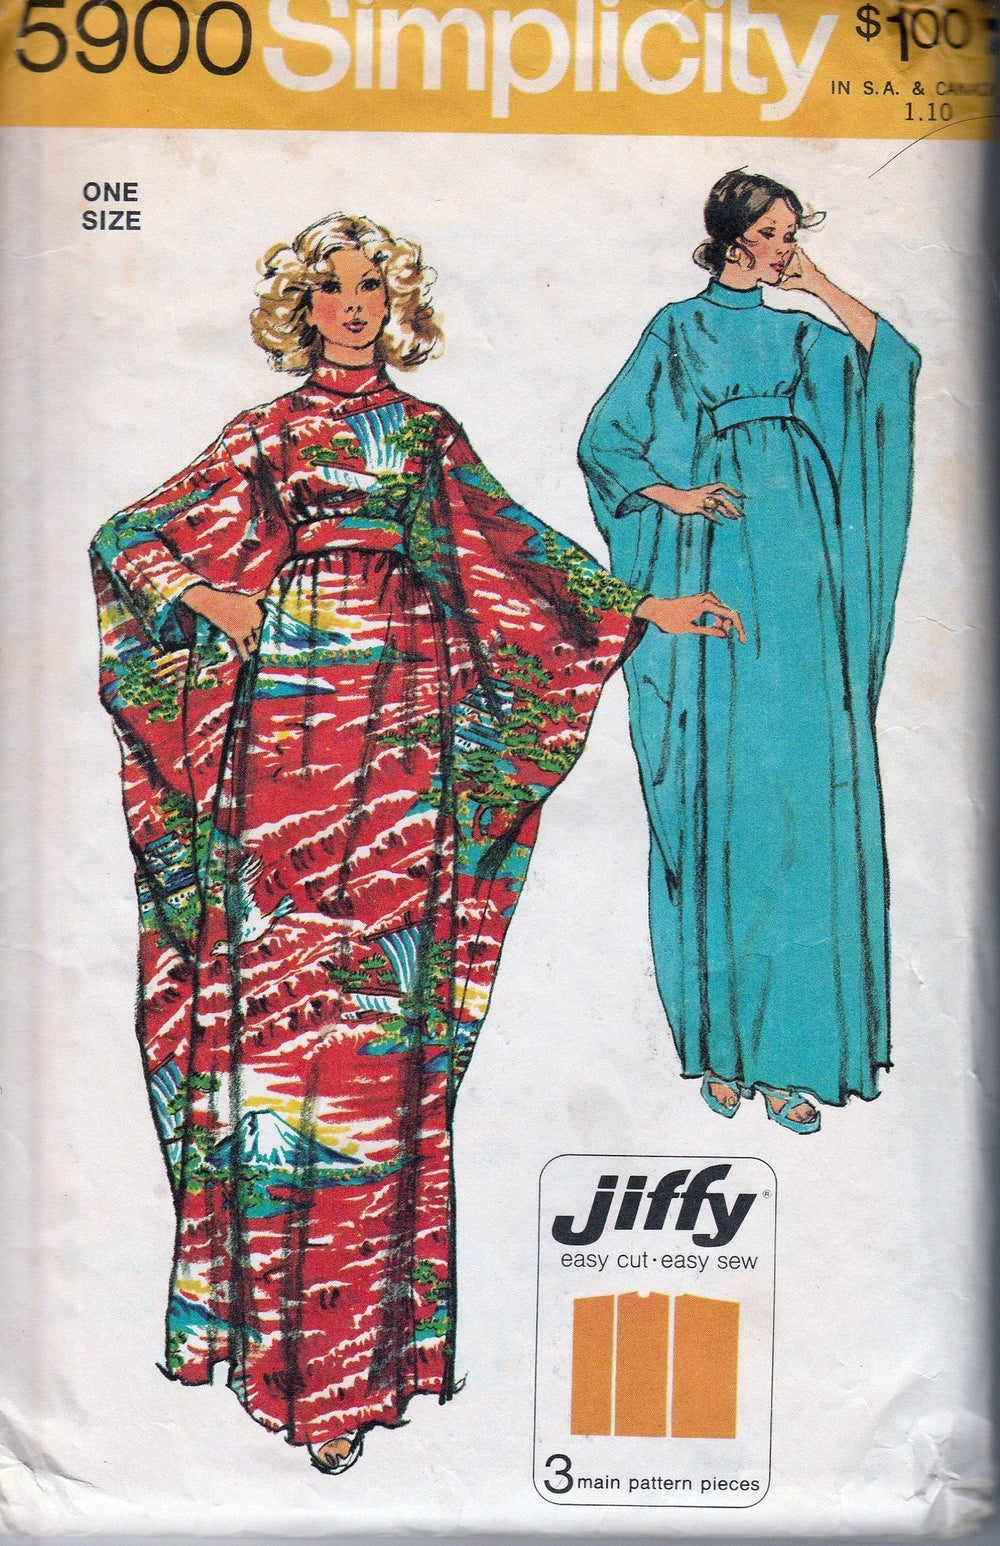 Simplicity 5900 Vintage 70's Sewing Pattern Jiffy Hippy Caftan Dress Robe - VintageStitching - Vintage Sewing Patterns